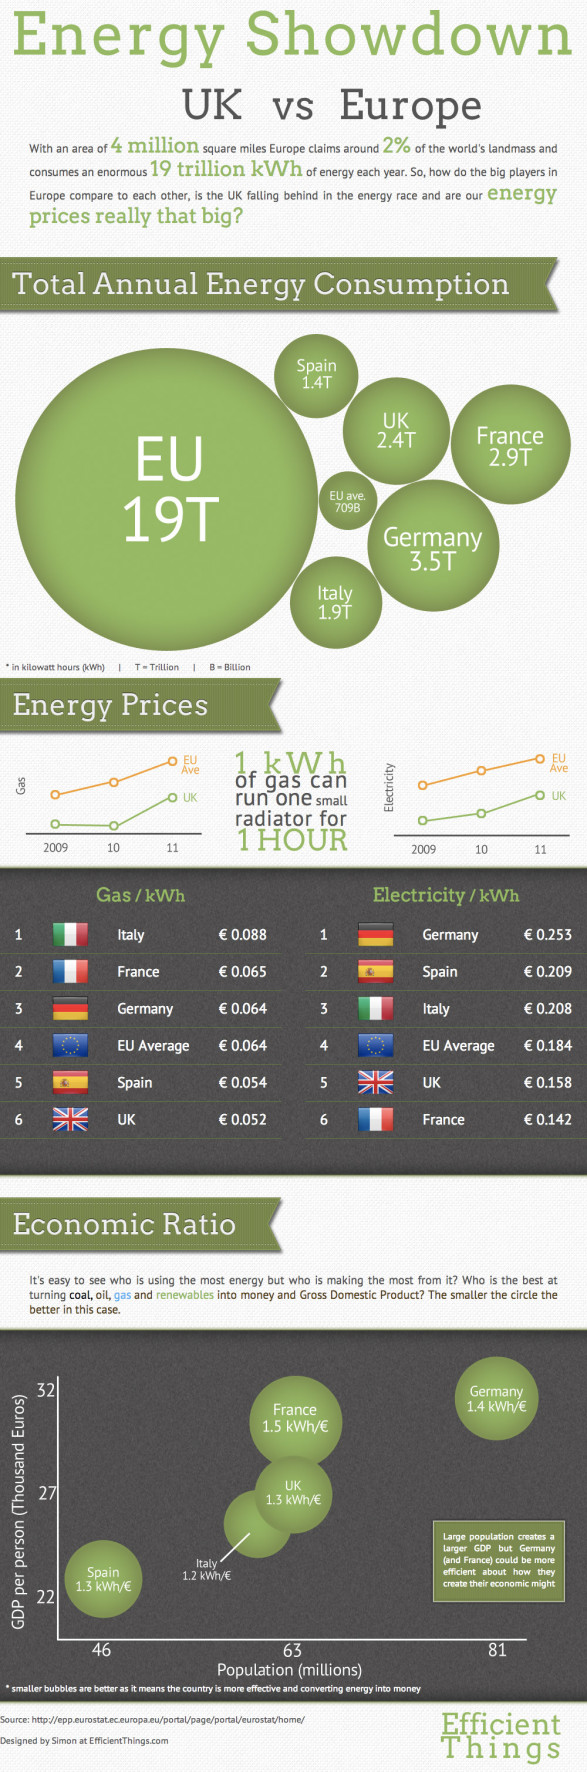 Energy Showdown: UK vs Europe